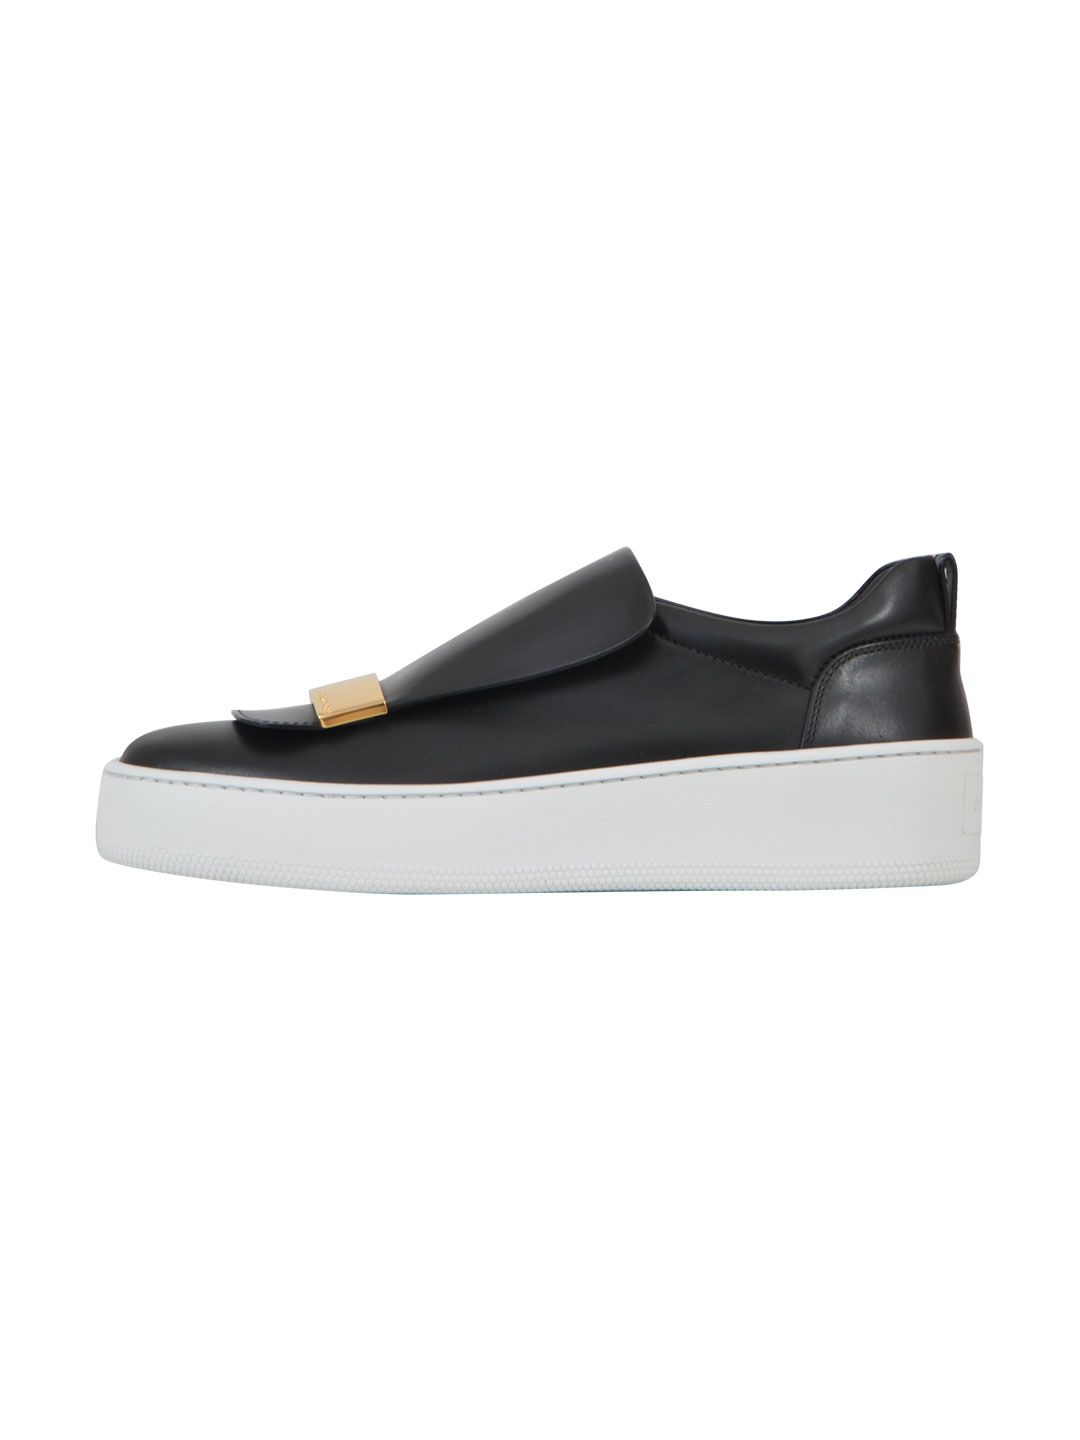 sergio rossi sergio rossi nubuck slip on black women 39 s sneakers italist. Black Bedroom Furniture Sets. Home Design Ideas